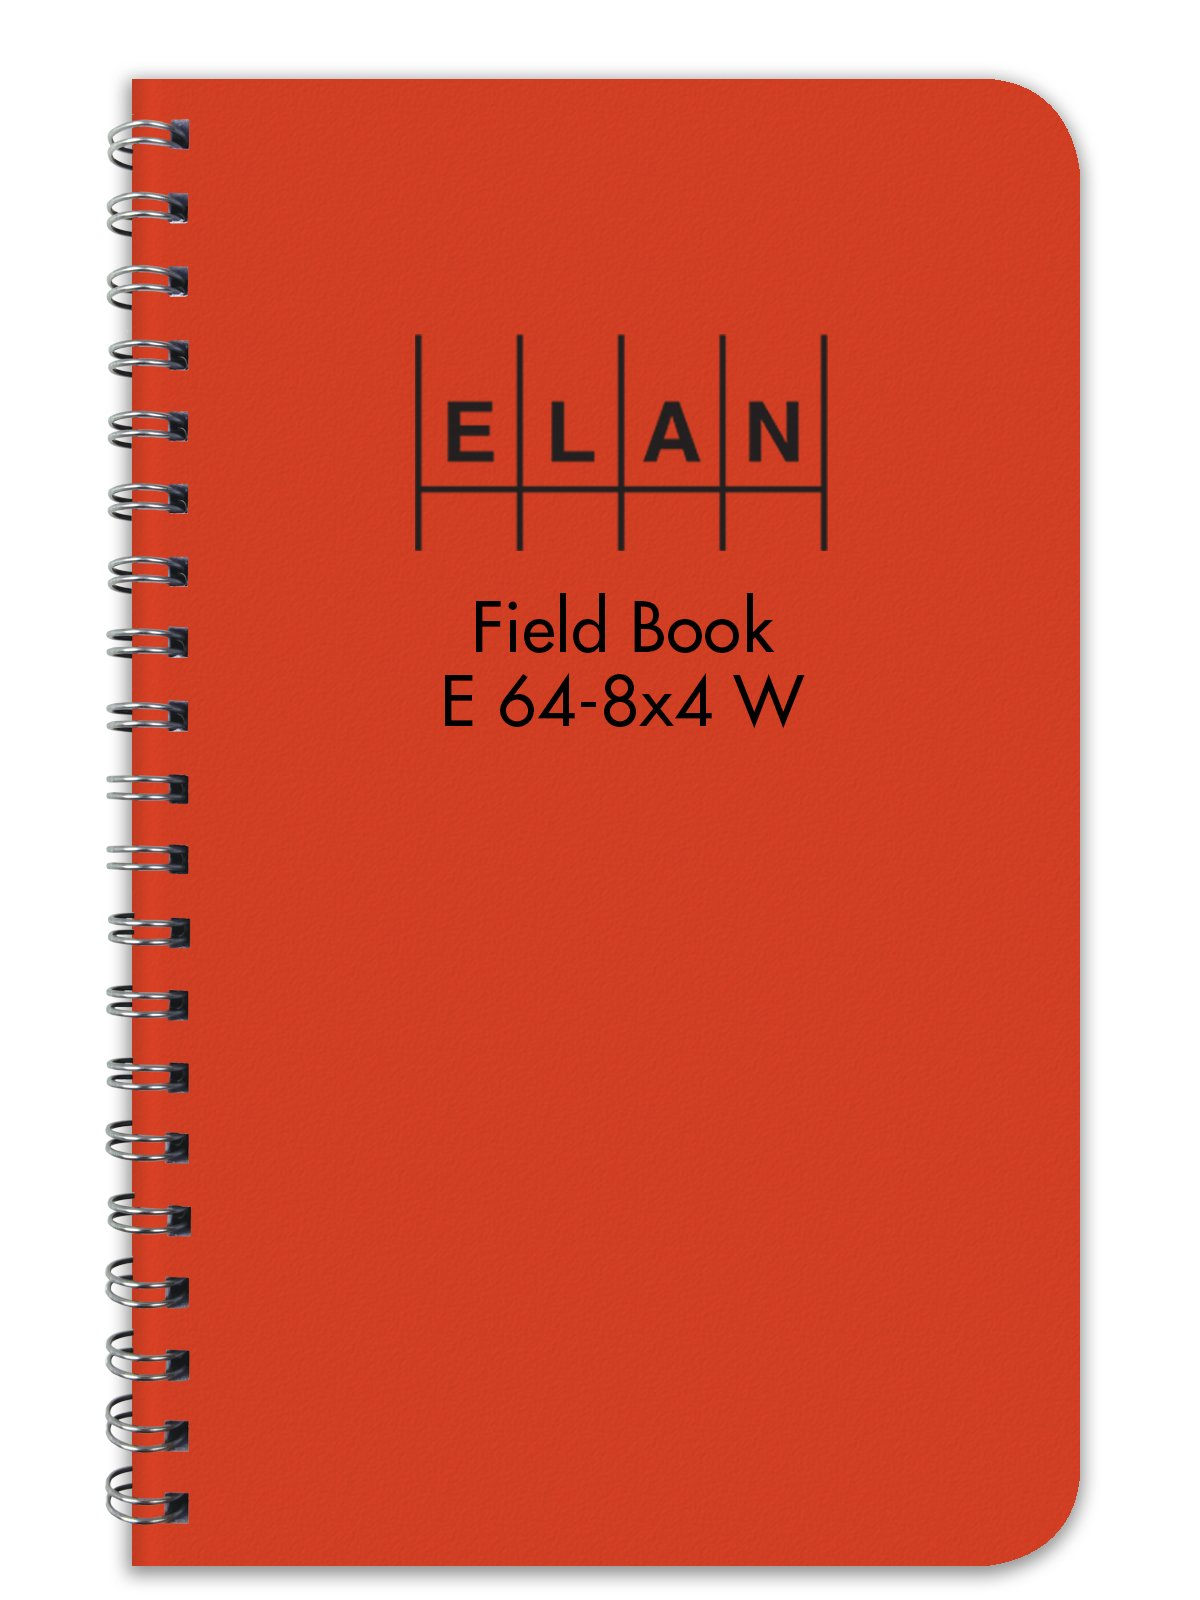 Elan Publishing Company E64-8x4W Wire-O Field Surveying Book 4 ⅞ x 7 ¼ Bright Orange Stiff Cover (Pack of 24) by Elan Publishing Company (Image #1)